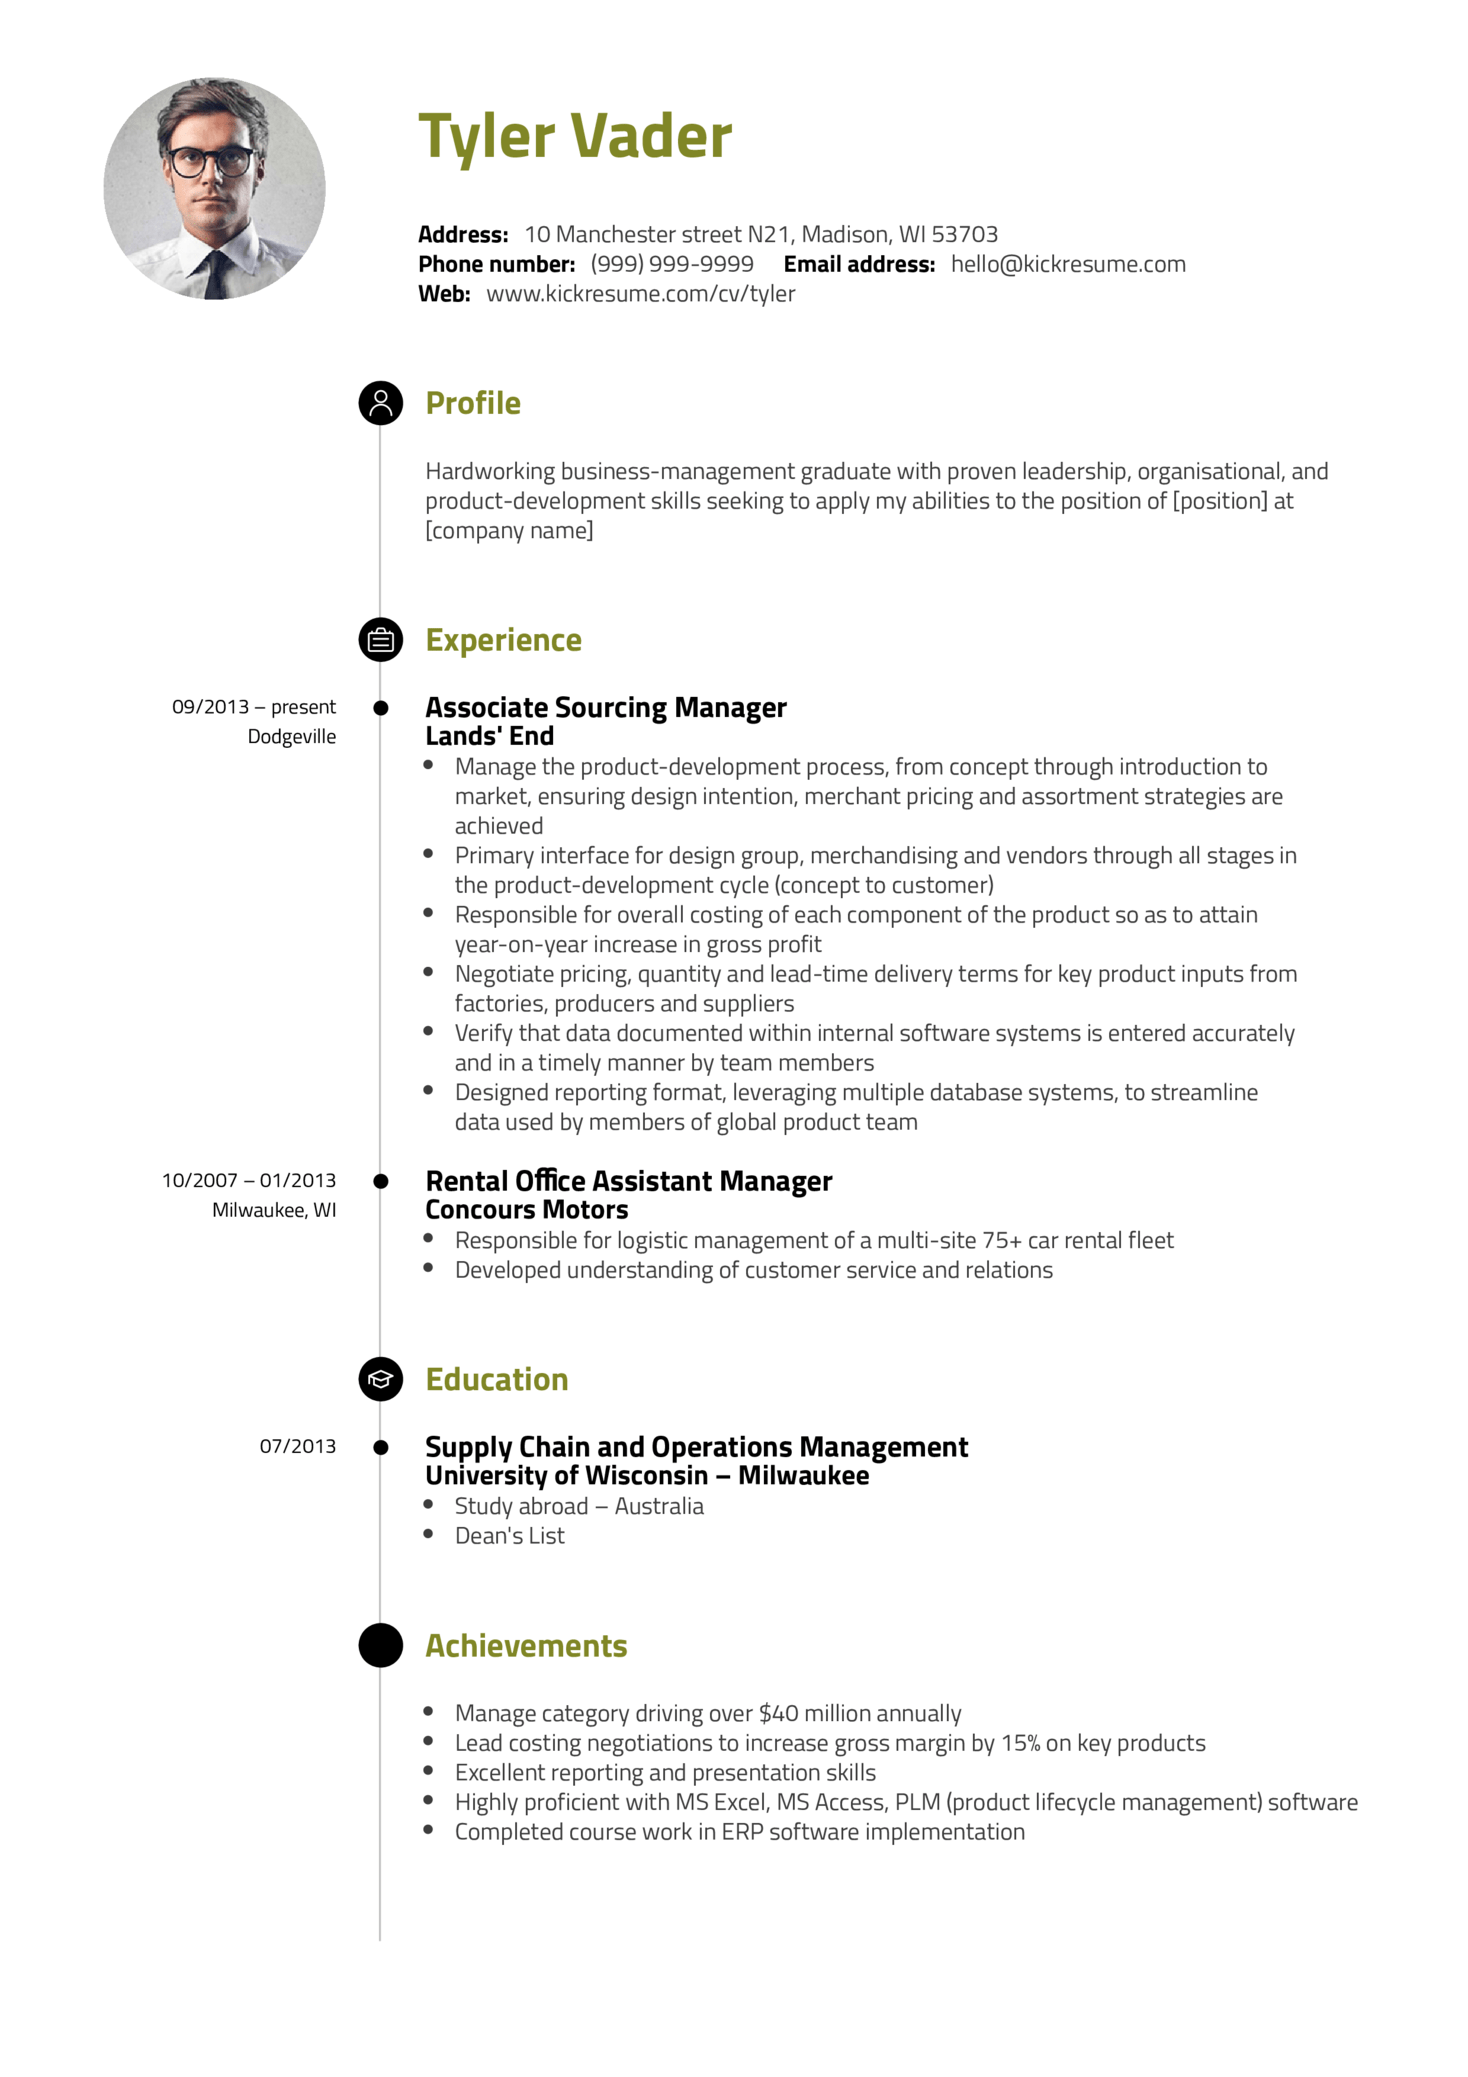 Business-management graduate cv example | Resume samples | Career ...